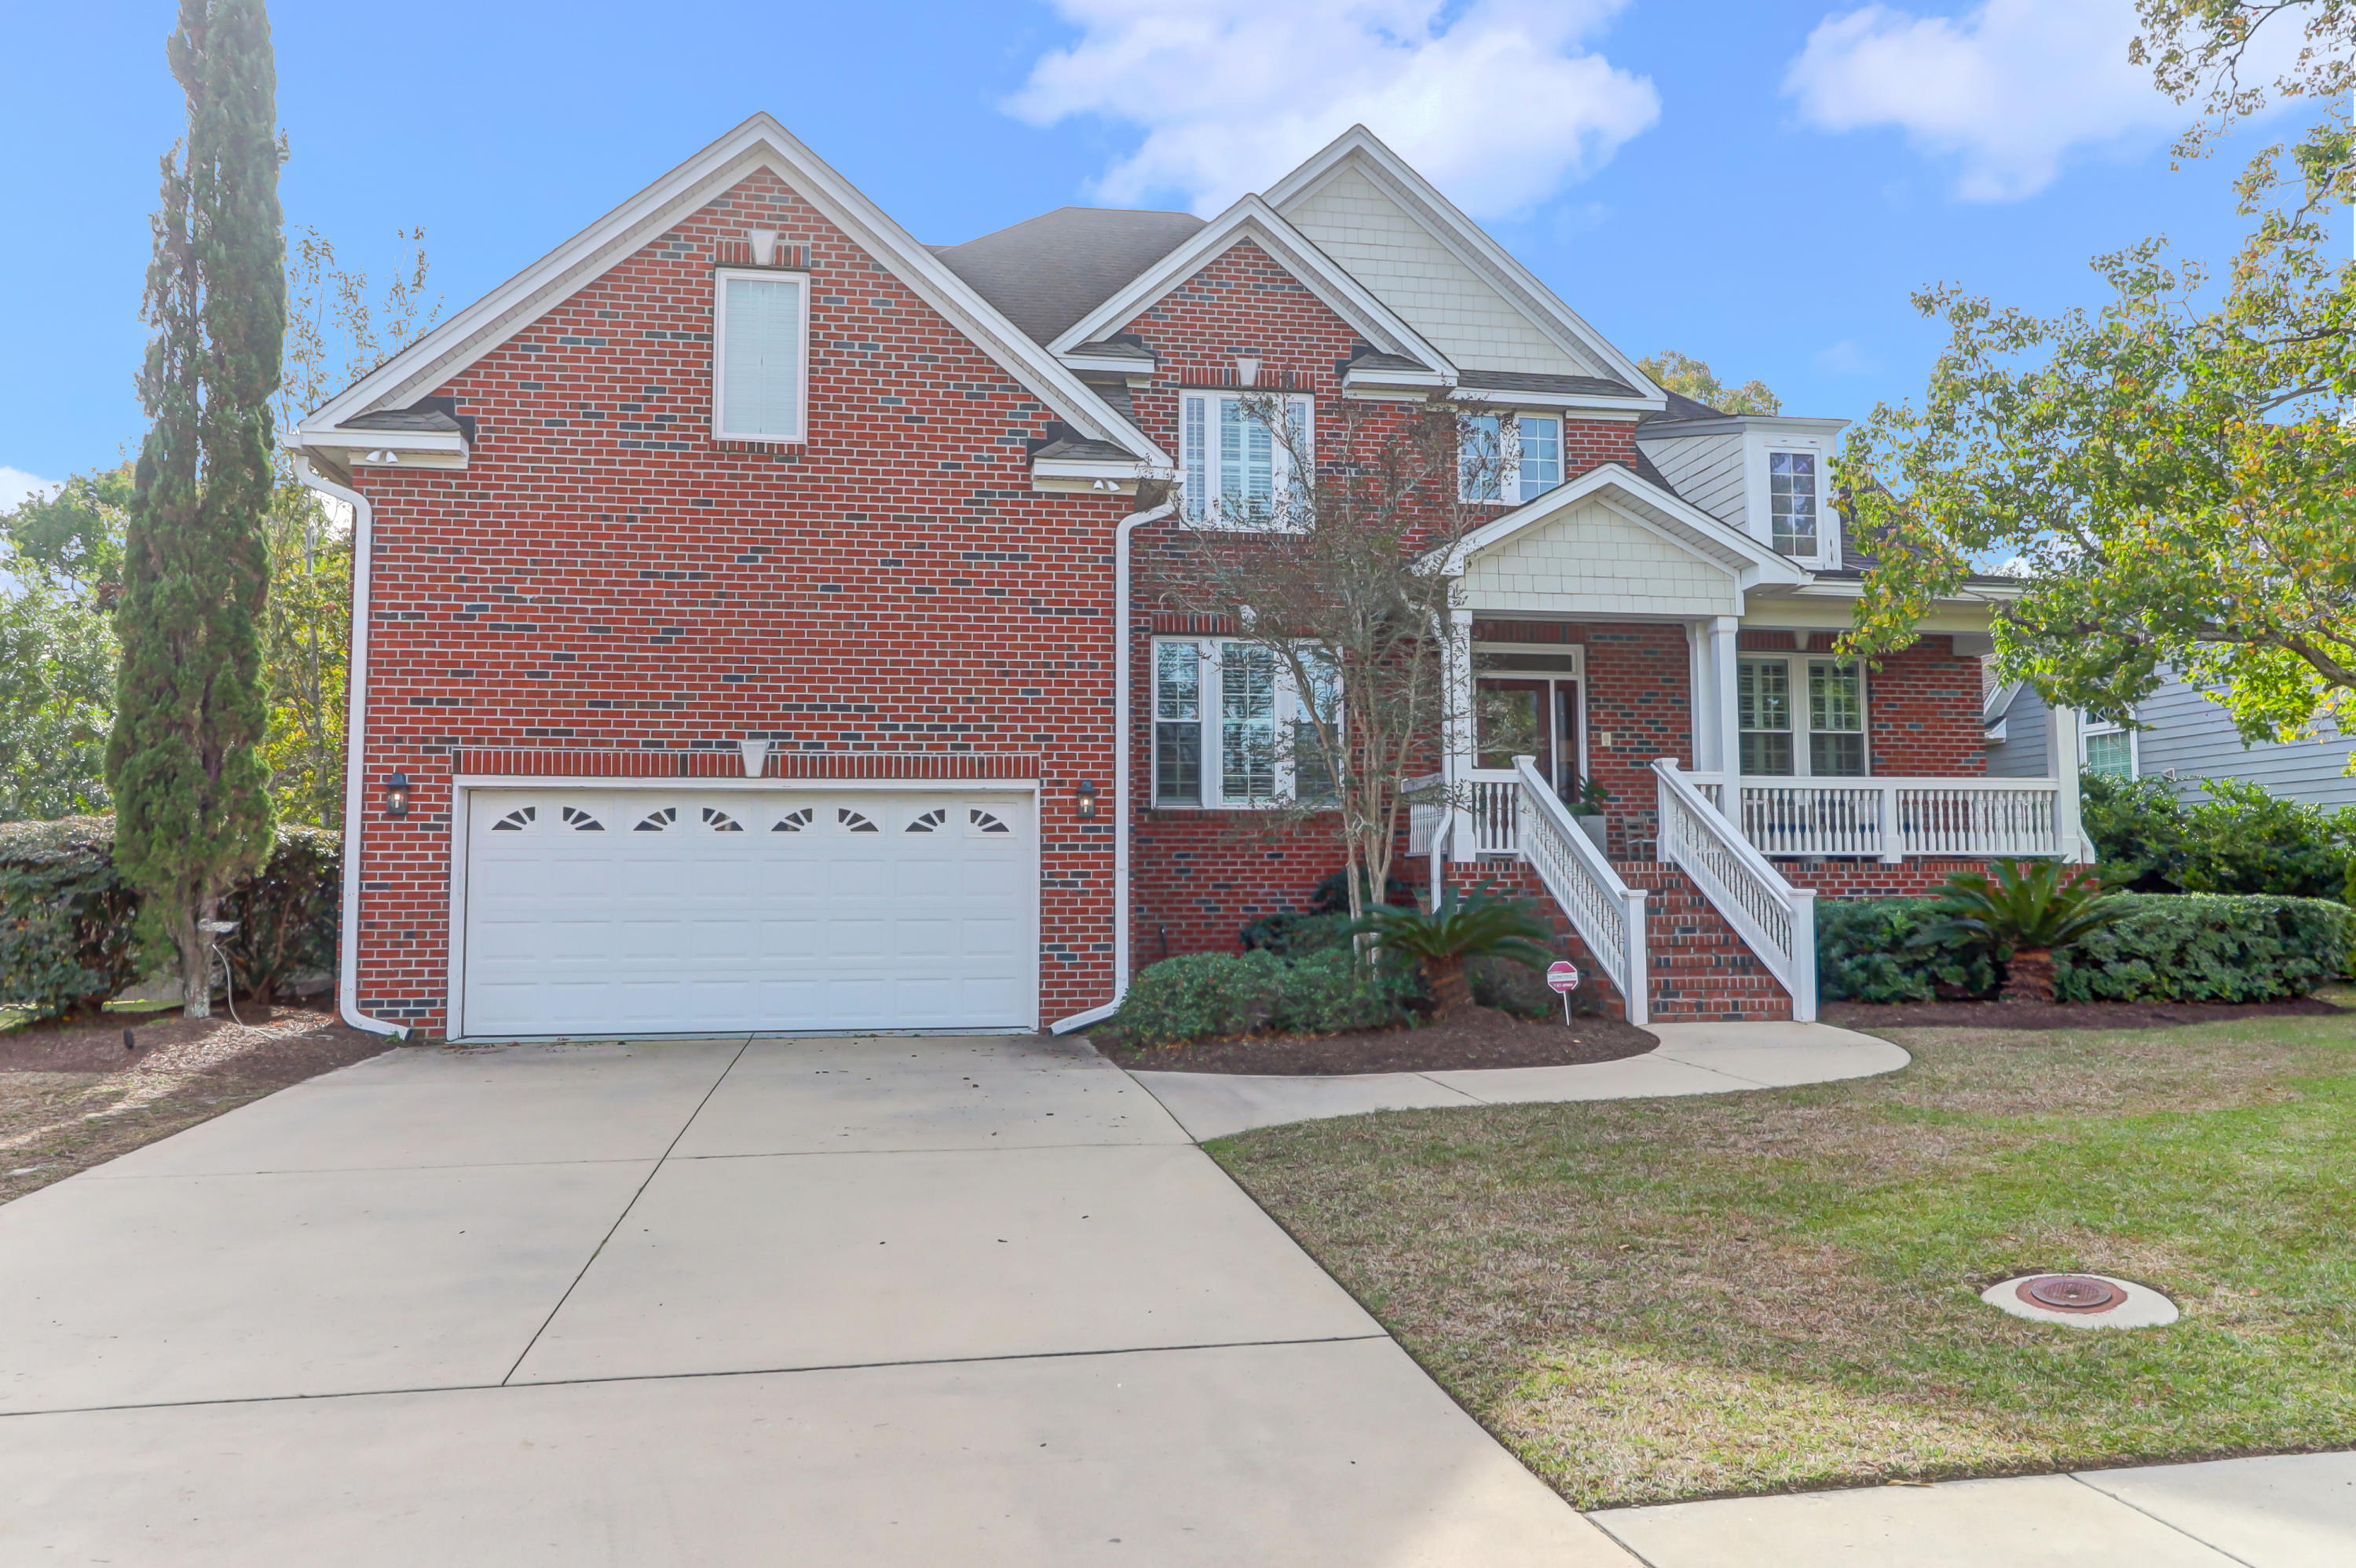 Woodward Pointe Homes For Sale - 657 White Chapel, Charleston, SC - 59